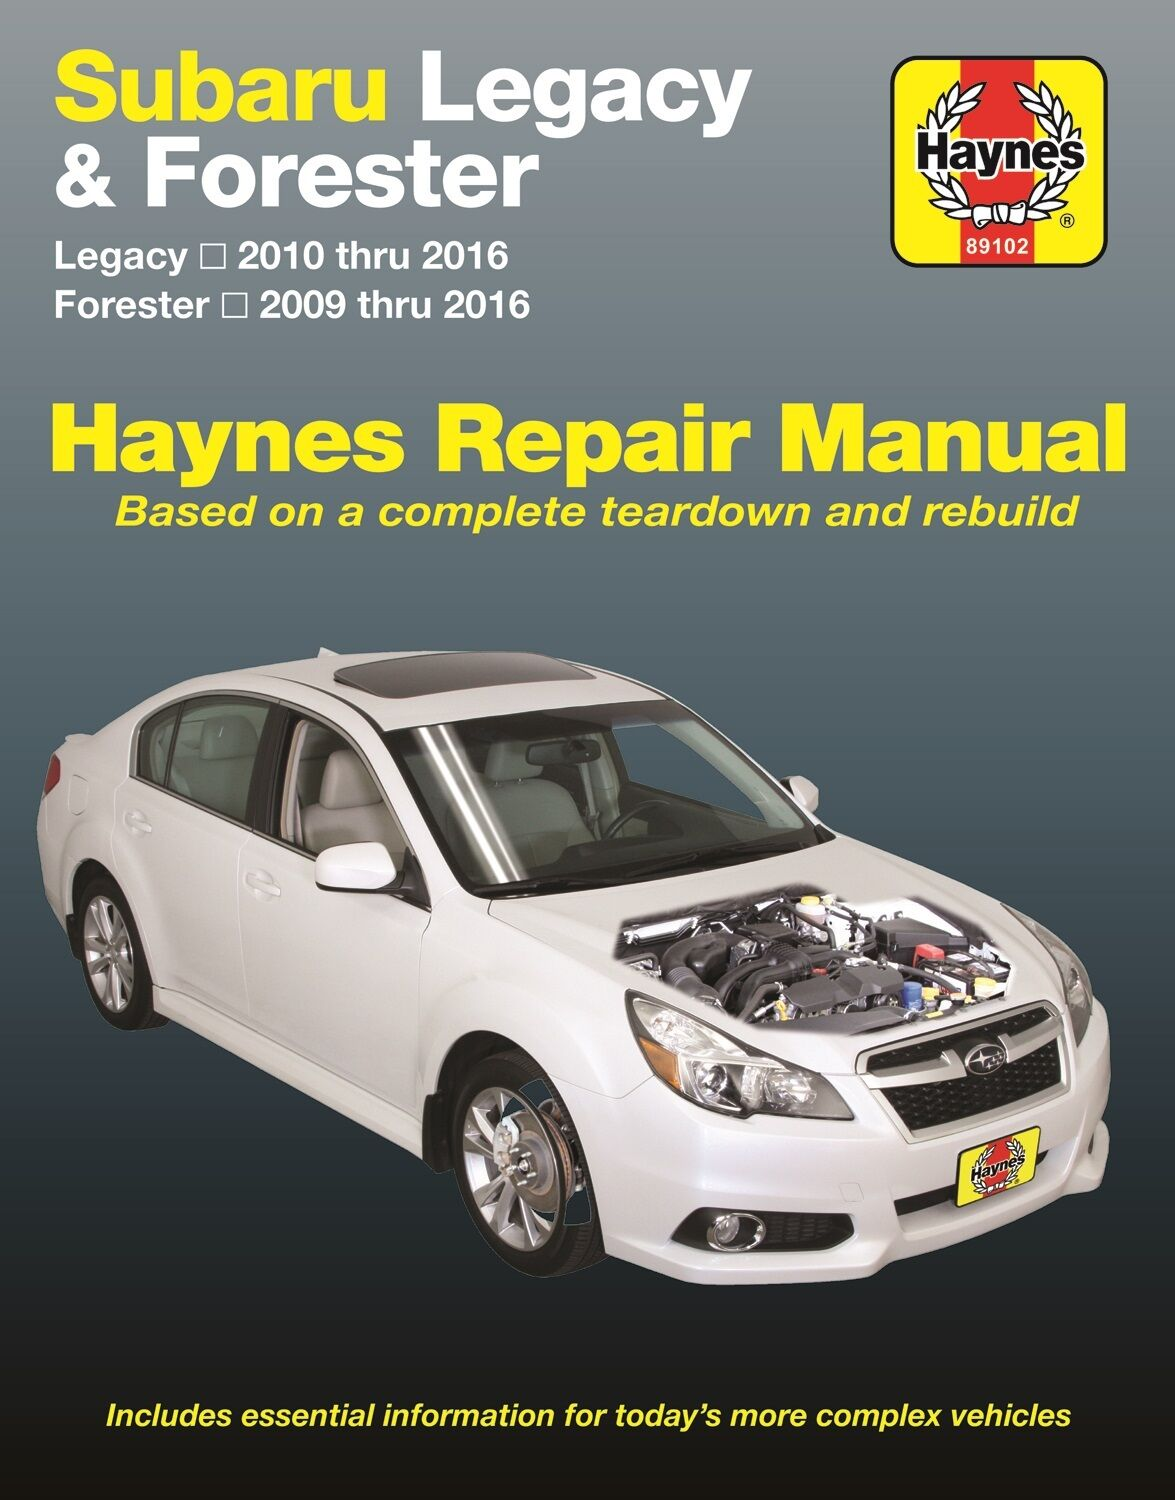 2009-2016 Subaru Legacy/Forester Haynes Repair Service Workshop Manual Book  2576 1 of 1FREE Shipping See More